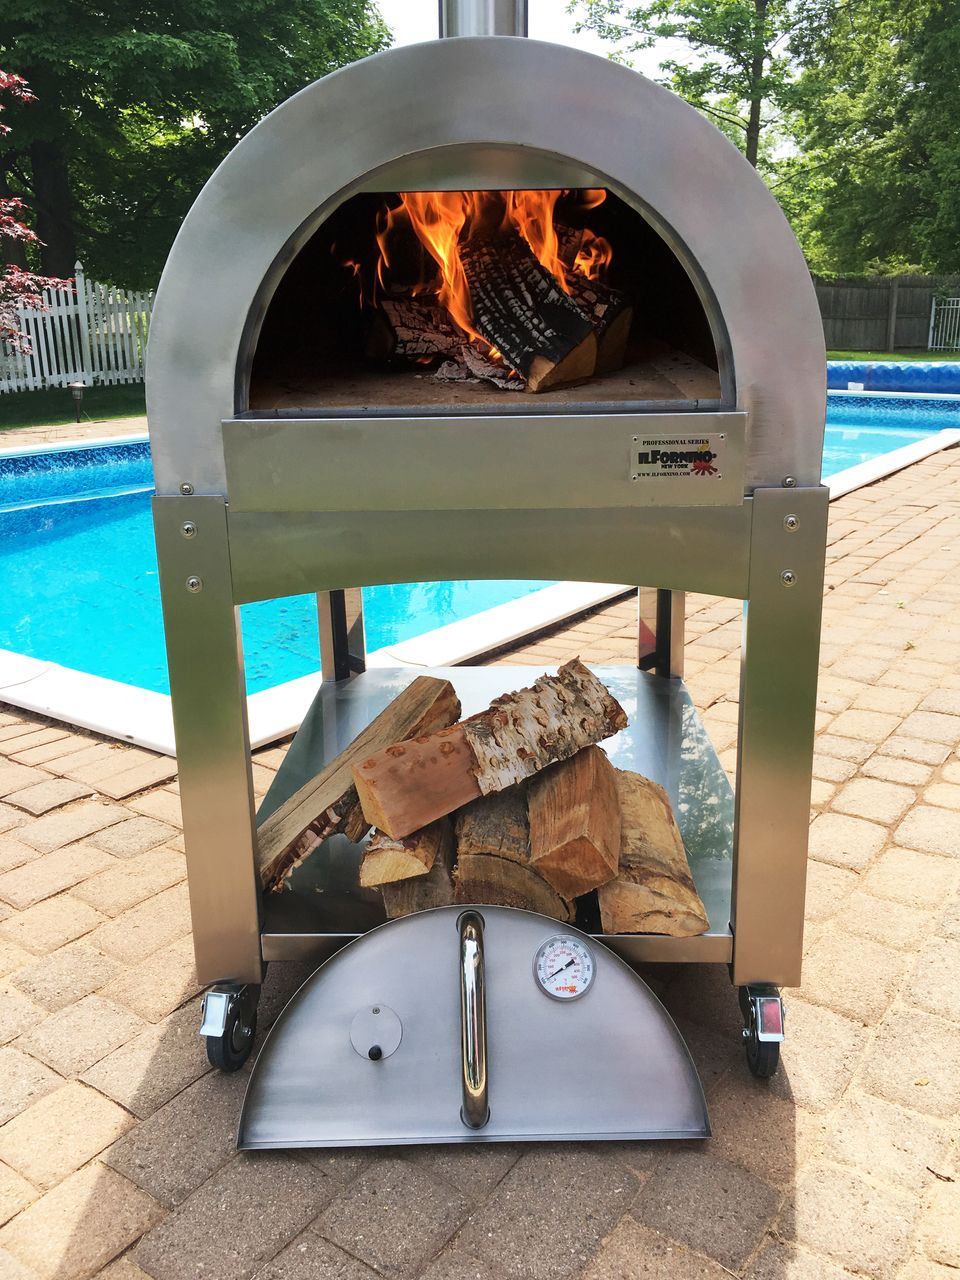 Ilfornino Professional Series Wood Burning Pizza Oven One Flat Cooking Surface Portable Pizza Oven Wood Burning Pizza Oven Wood Fired Pizza Oven